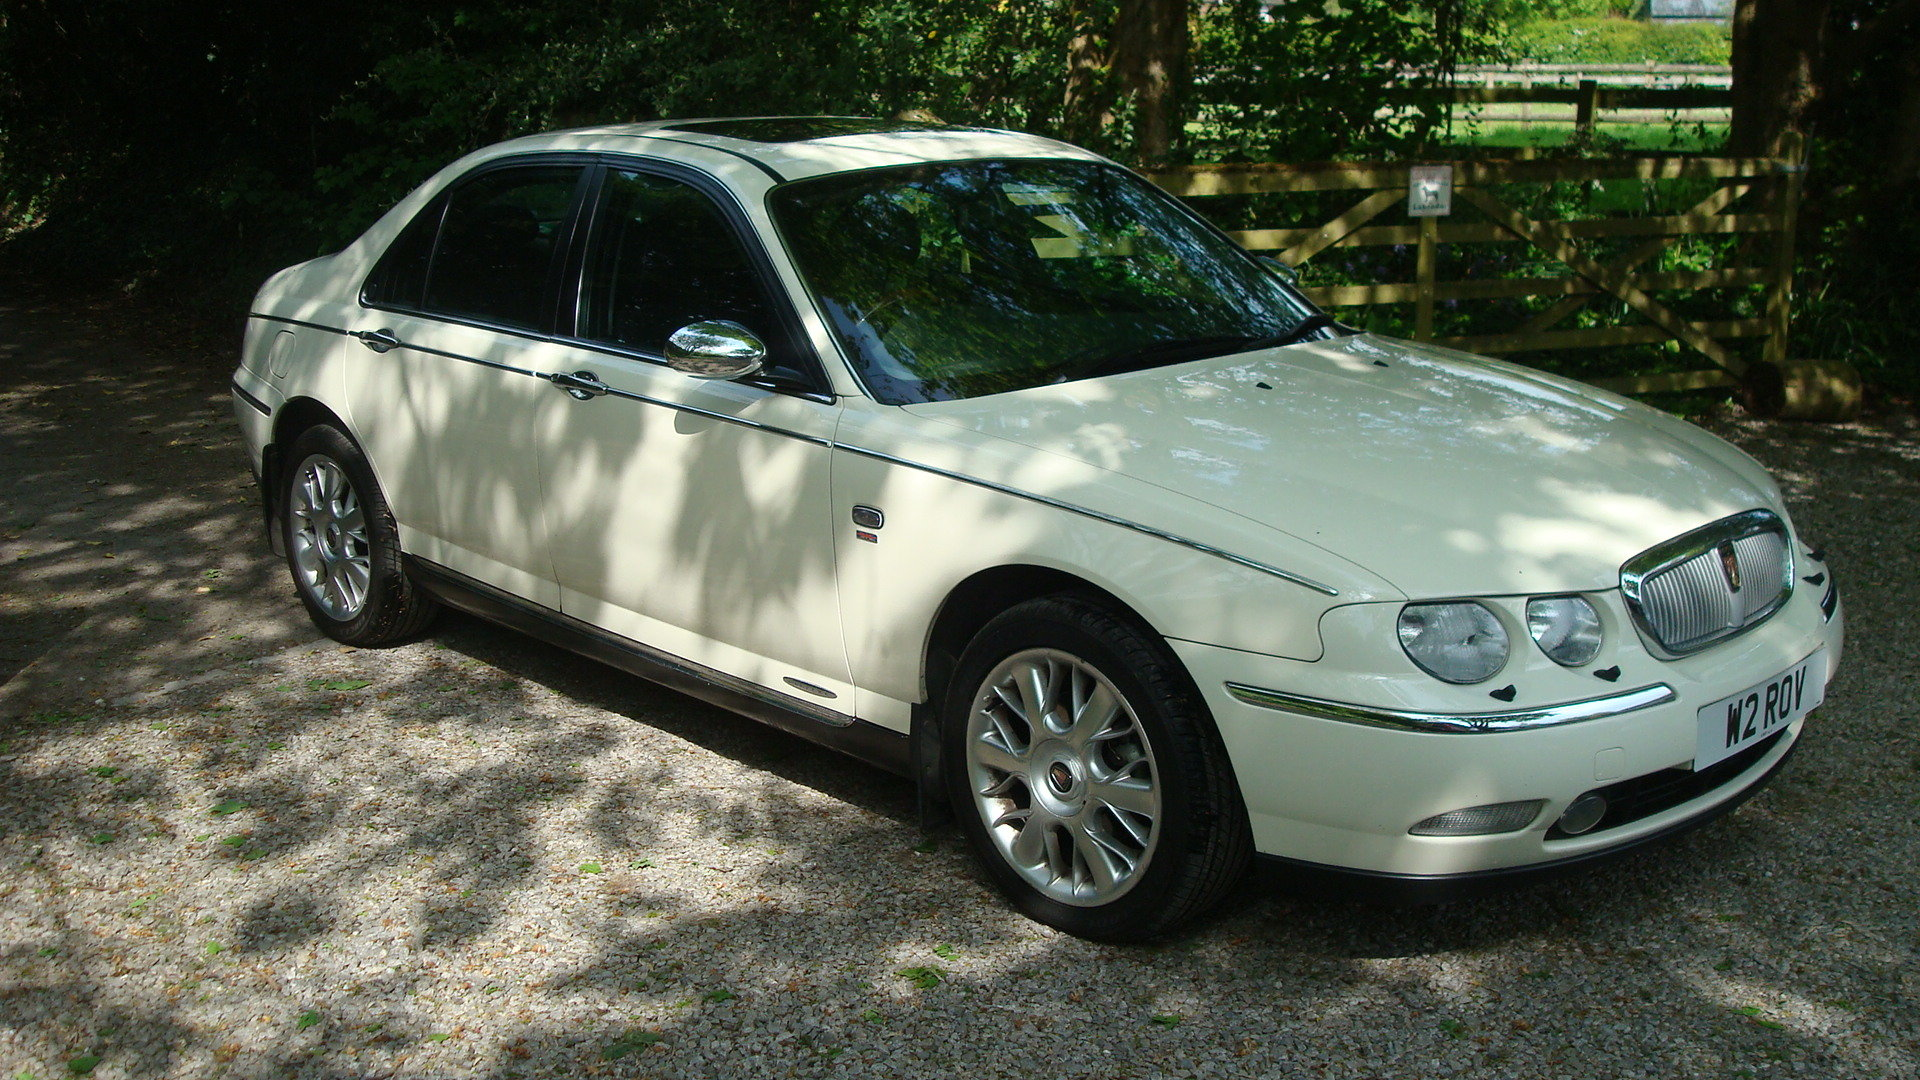 Used Rover 75 connoisseur for Sale | Used Cars | Gumtree